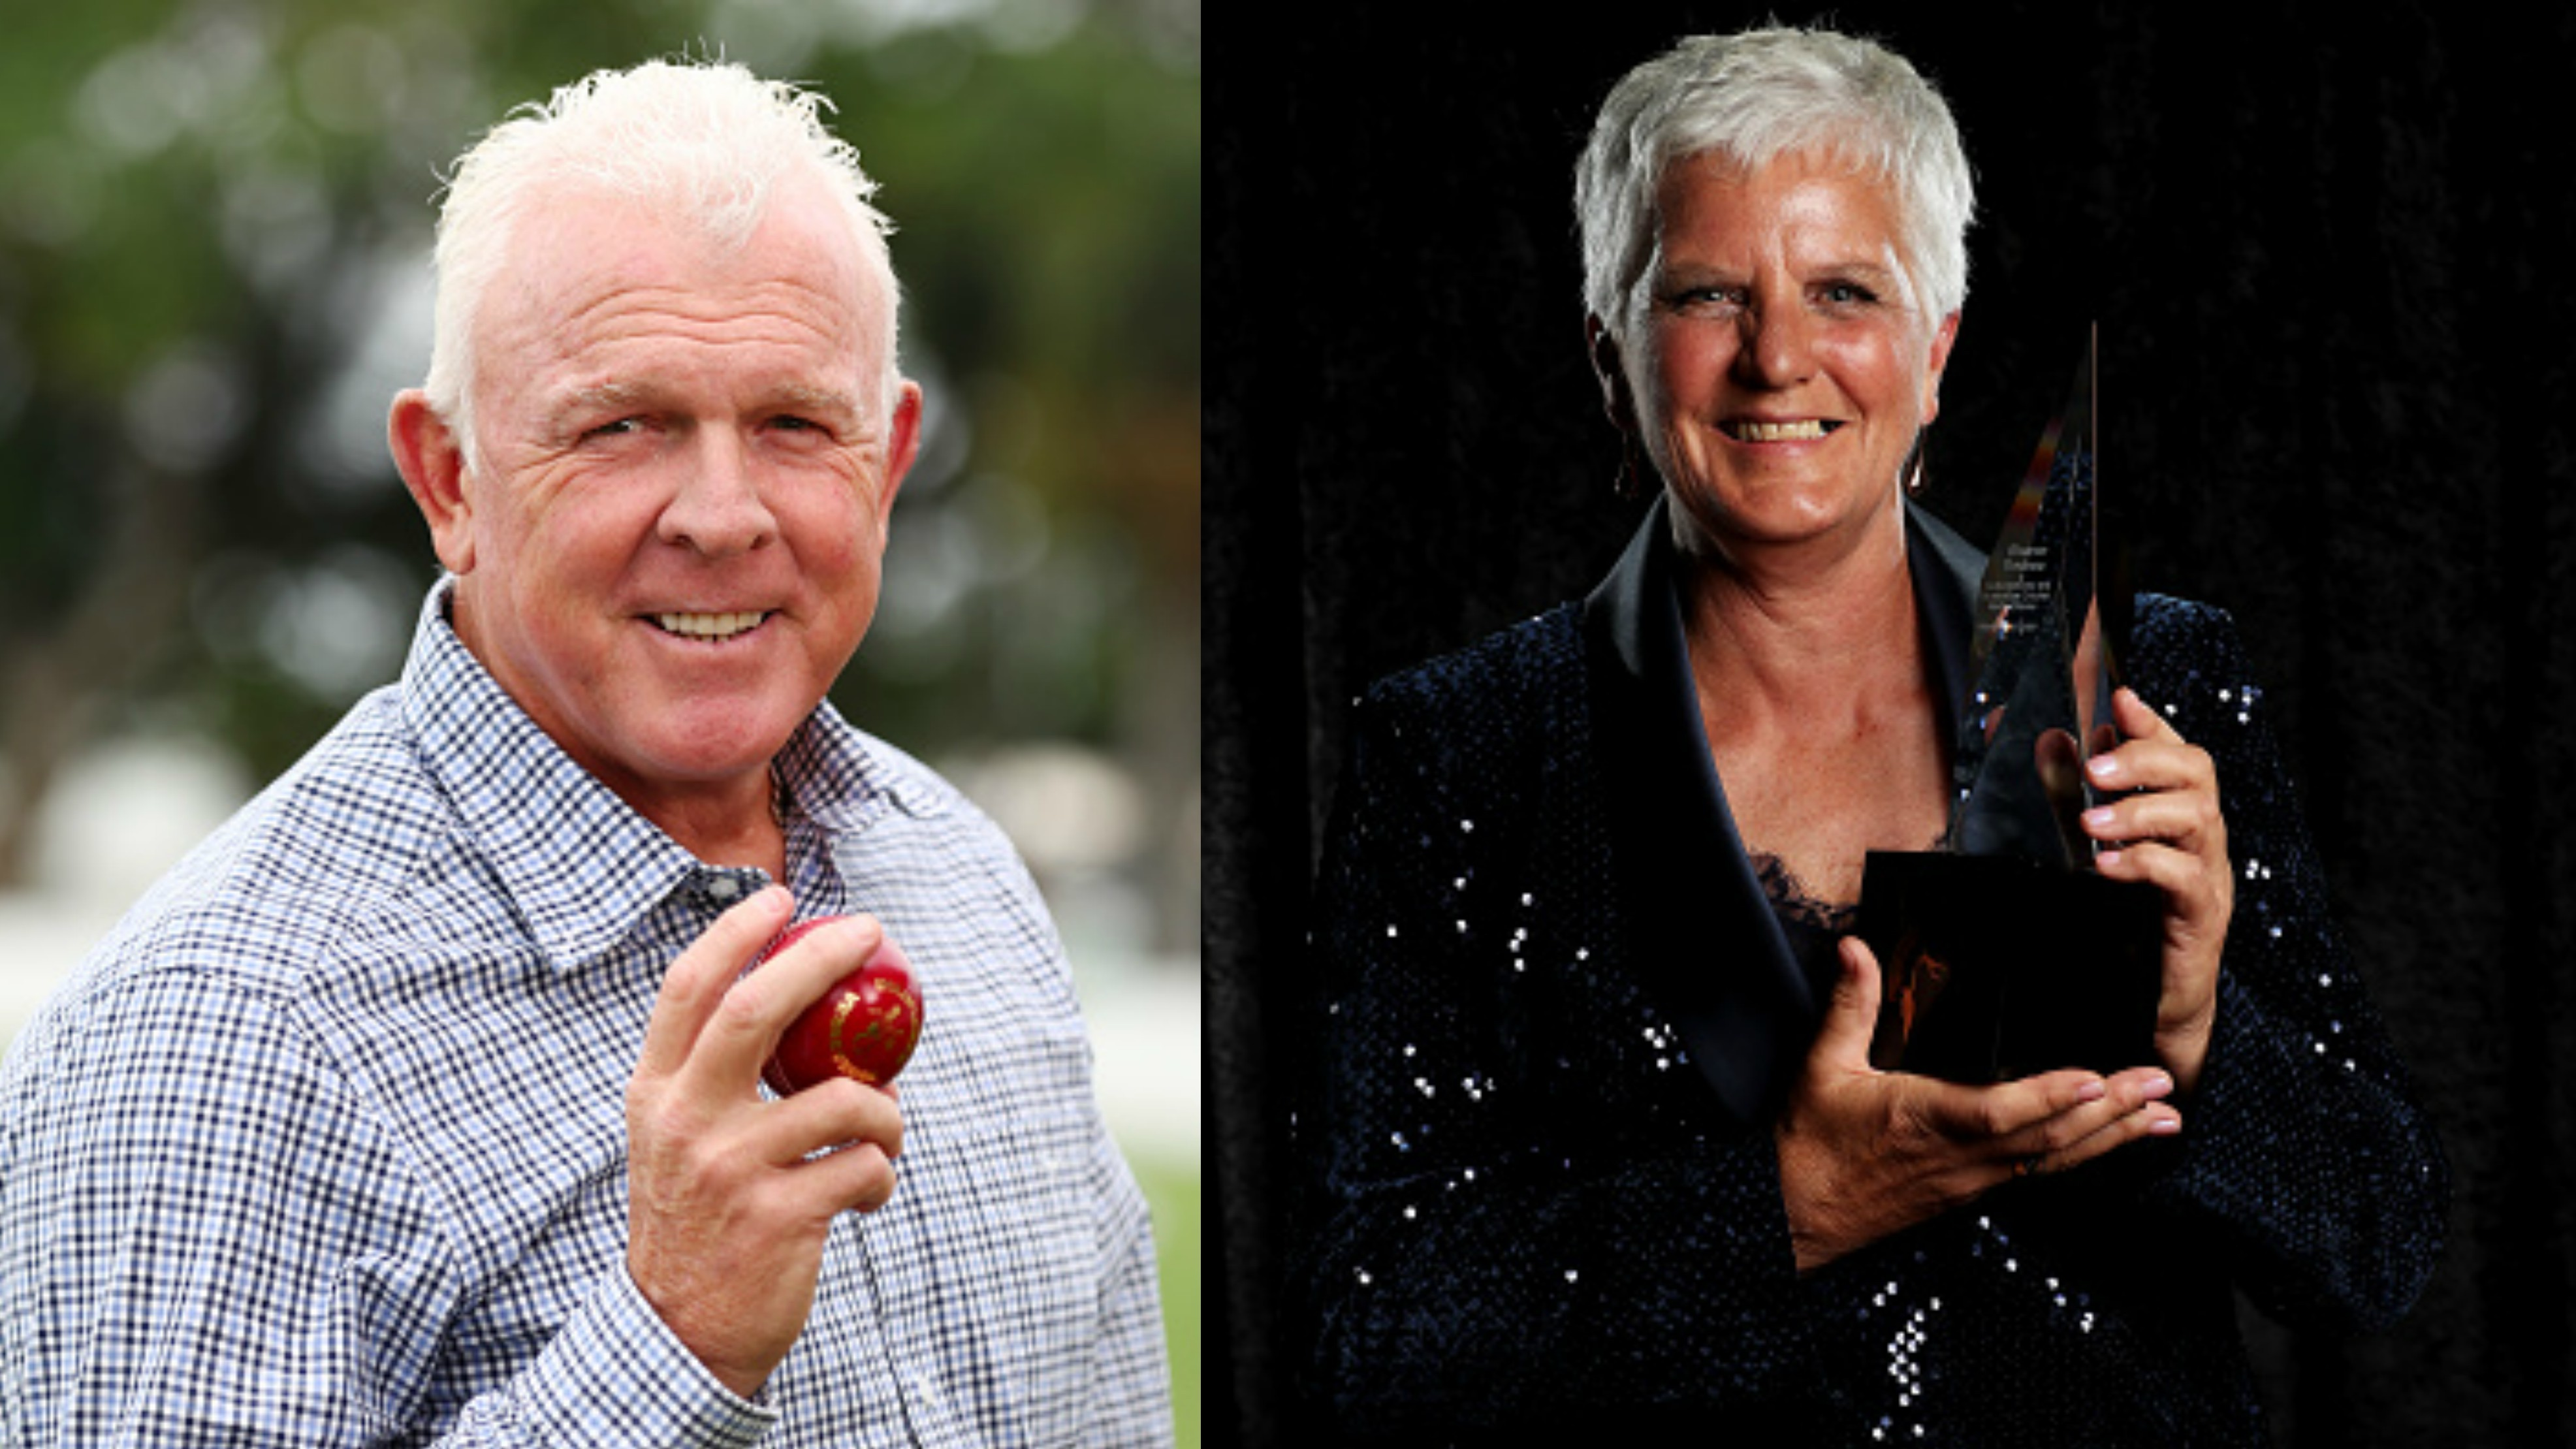 Craig McDermott and Sharon Tredrea inducted into the Australian Cricket Hall of Fame